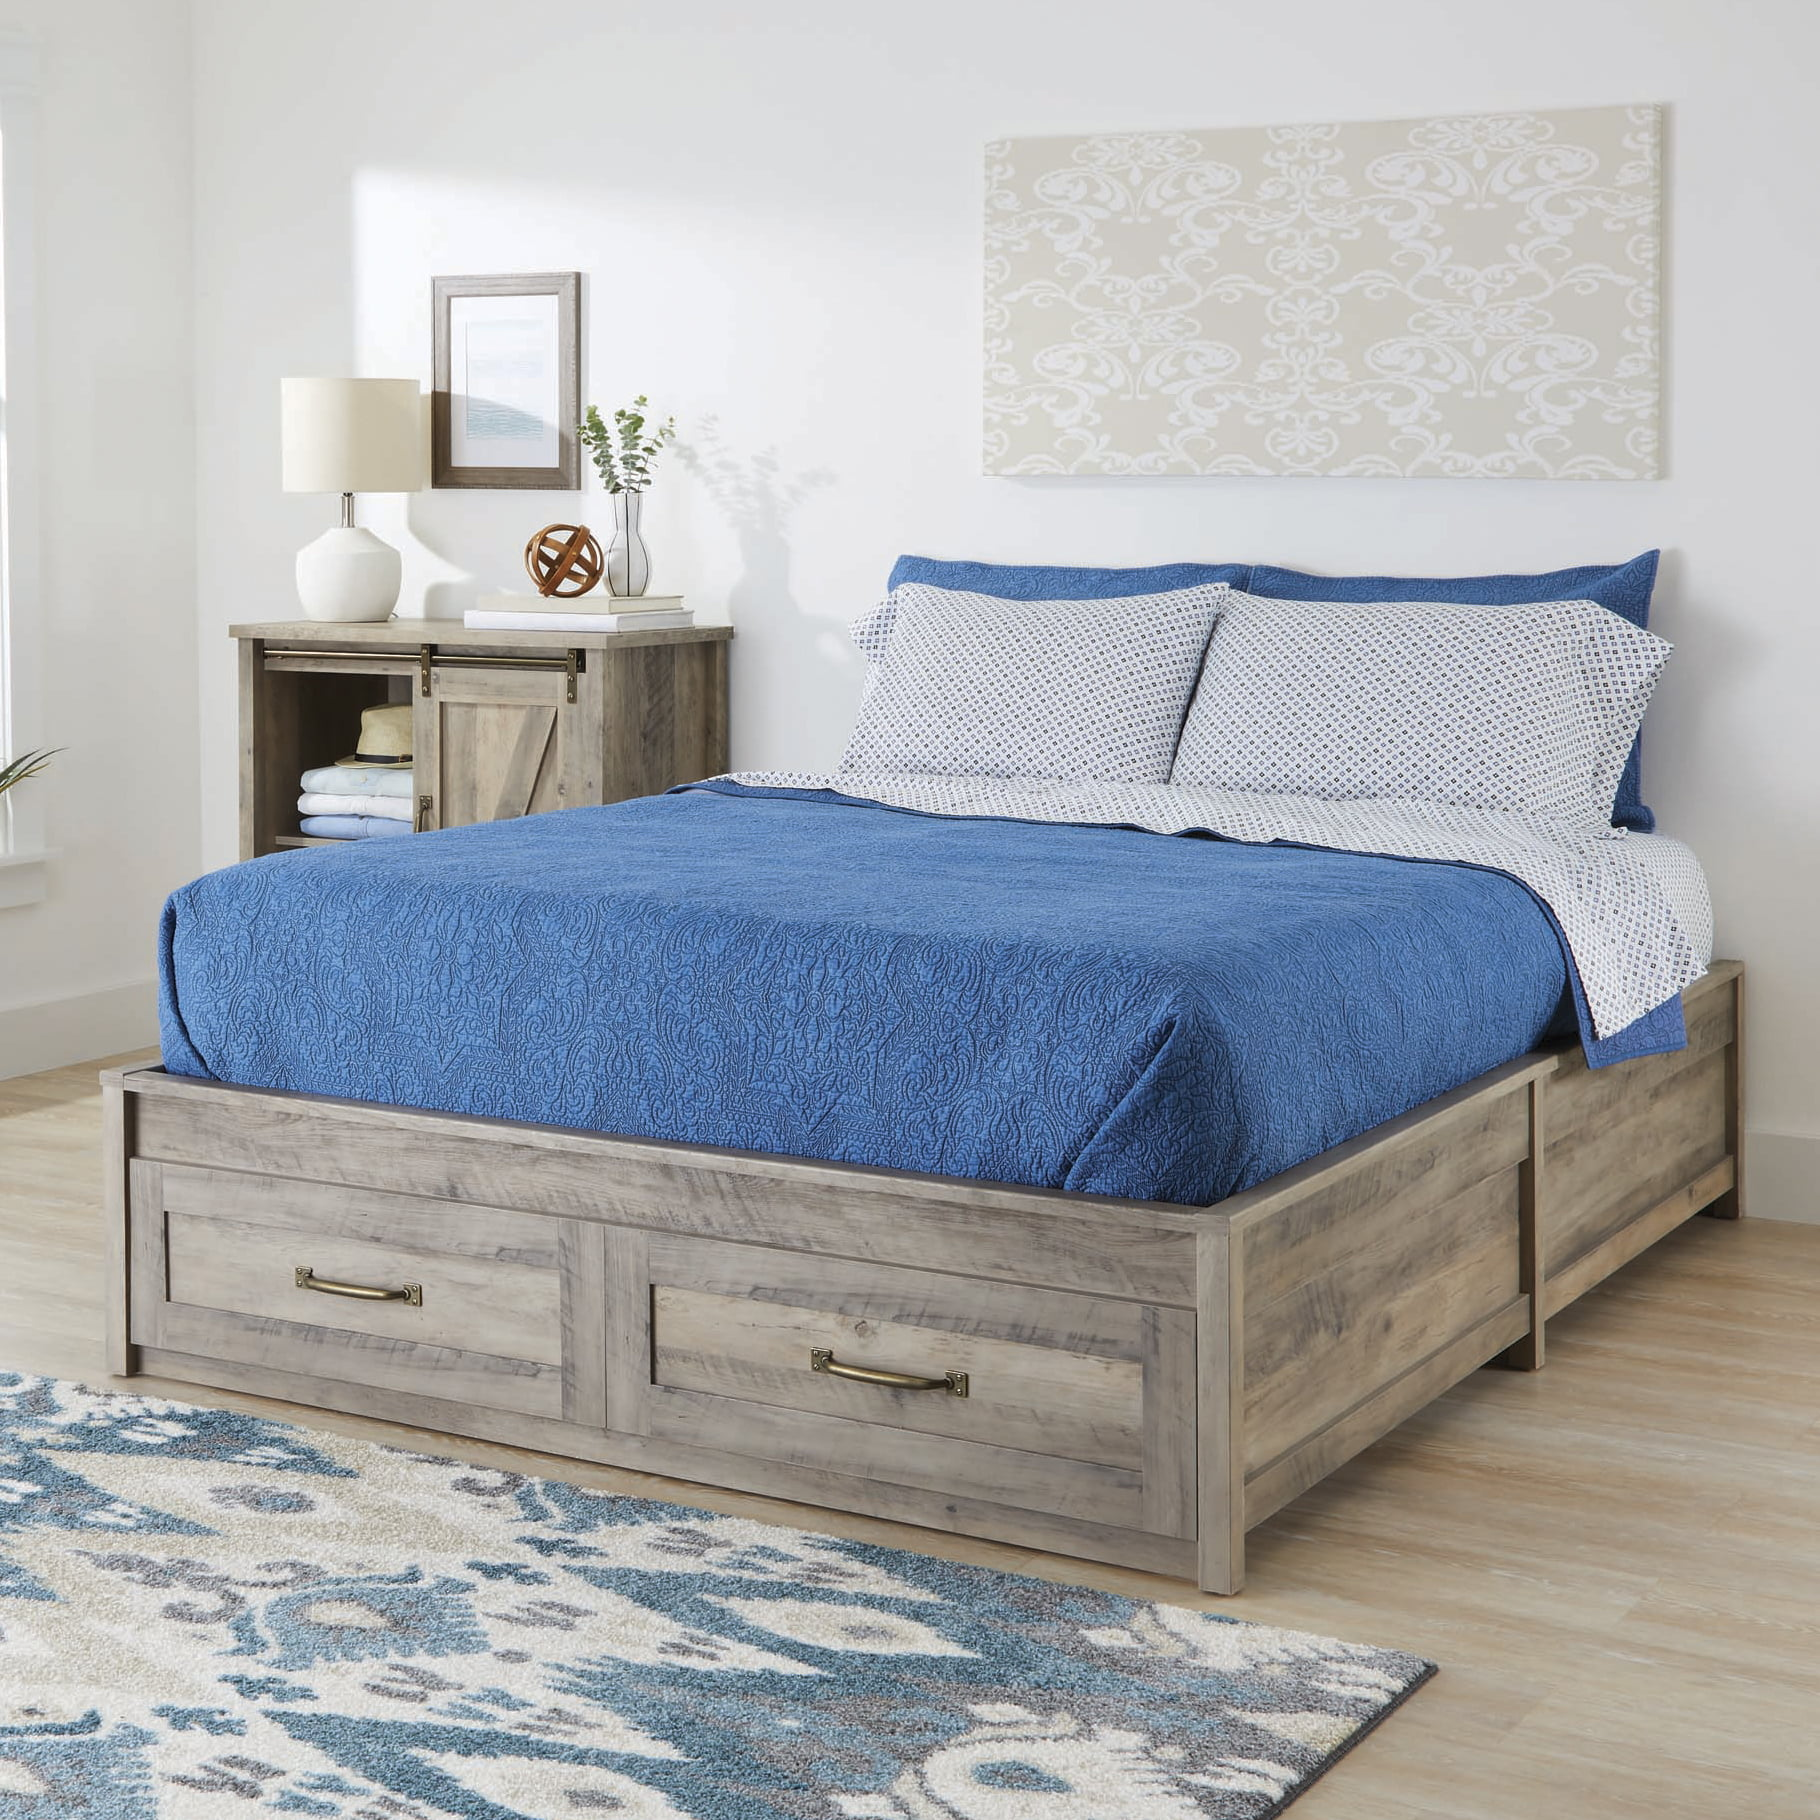 Better Homes Gardens Modern Farmhouse Queen Platform Bed With Storage Rustic Gray Finish Walmart Com Walmart Com